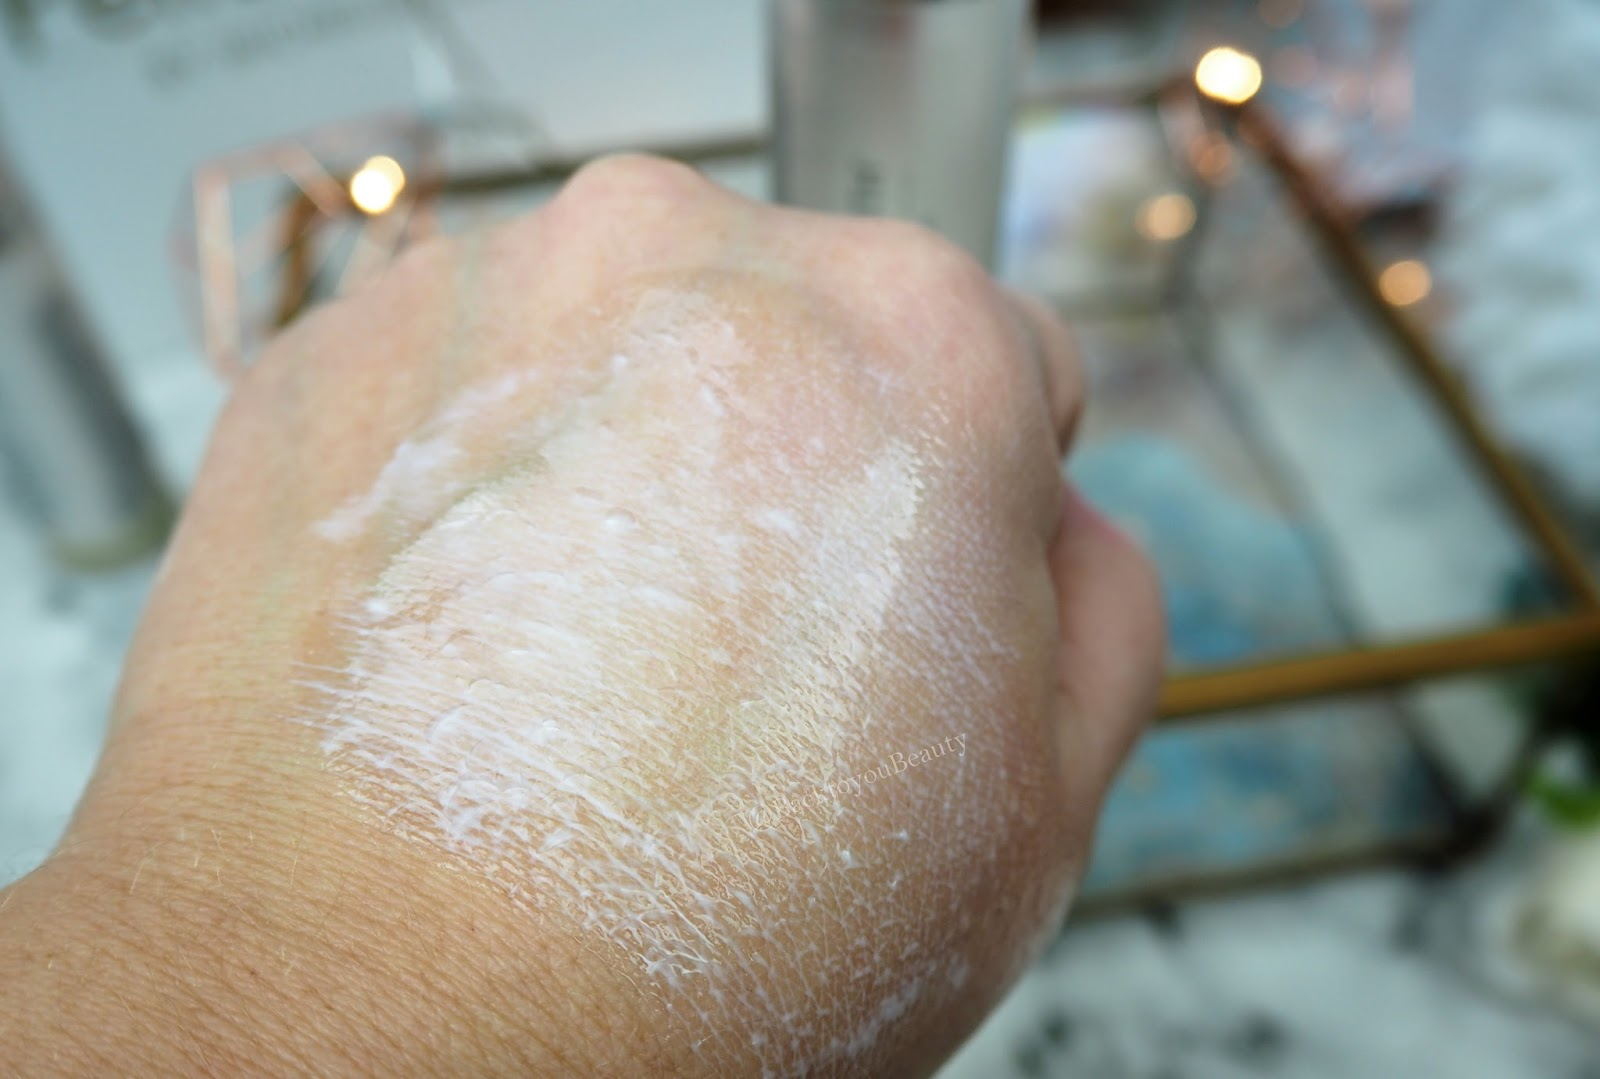 Pellum Vero Cleanser Swatch - water added